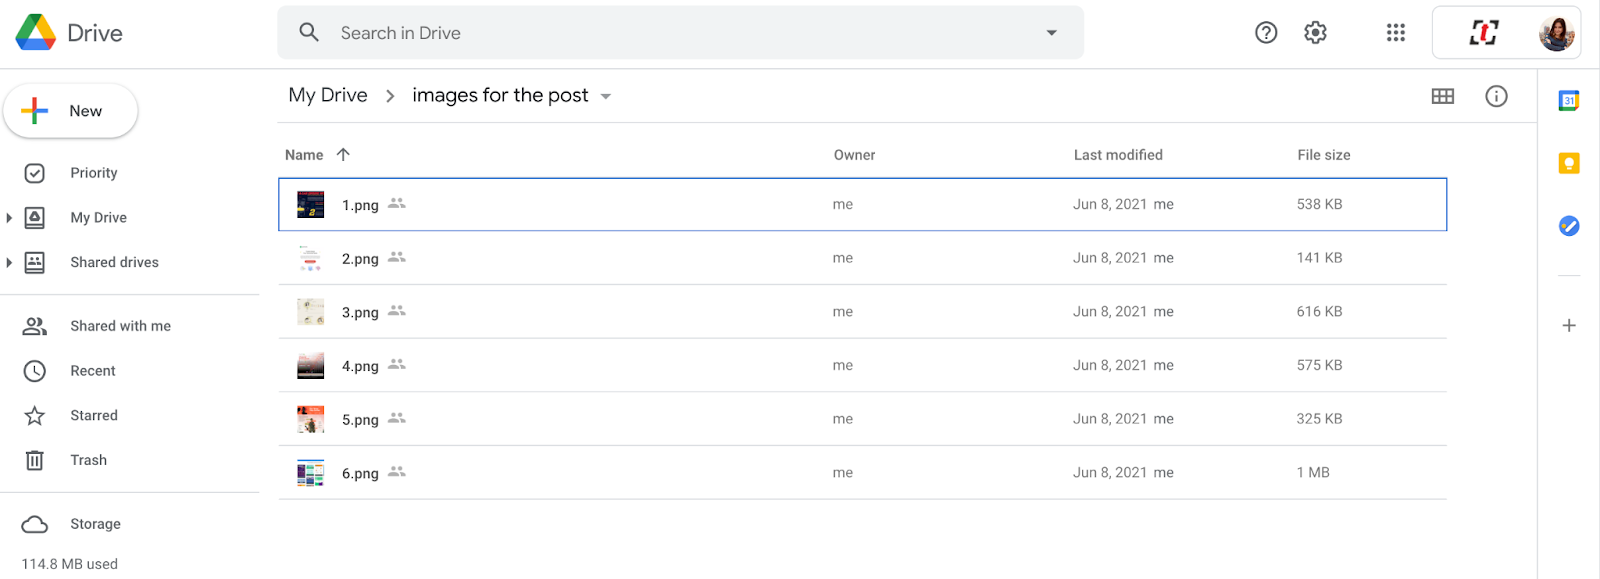 Open your Google Drive account and browse the folder that you want to upload your files into